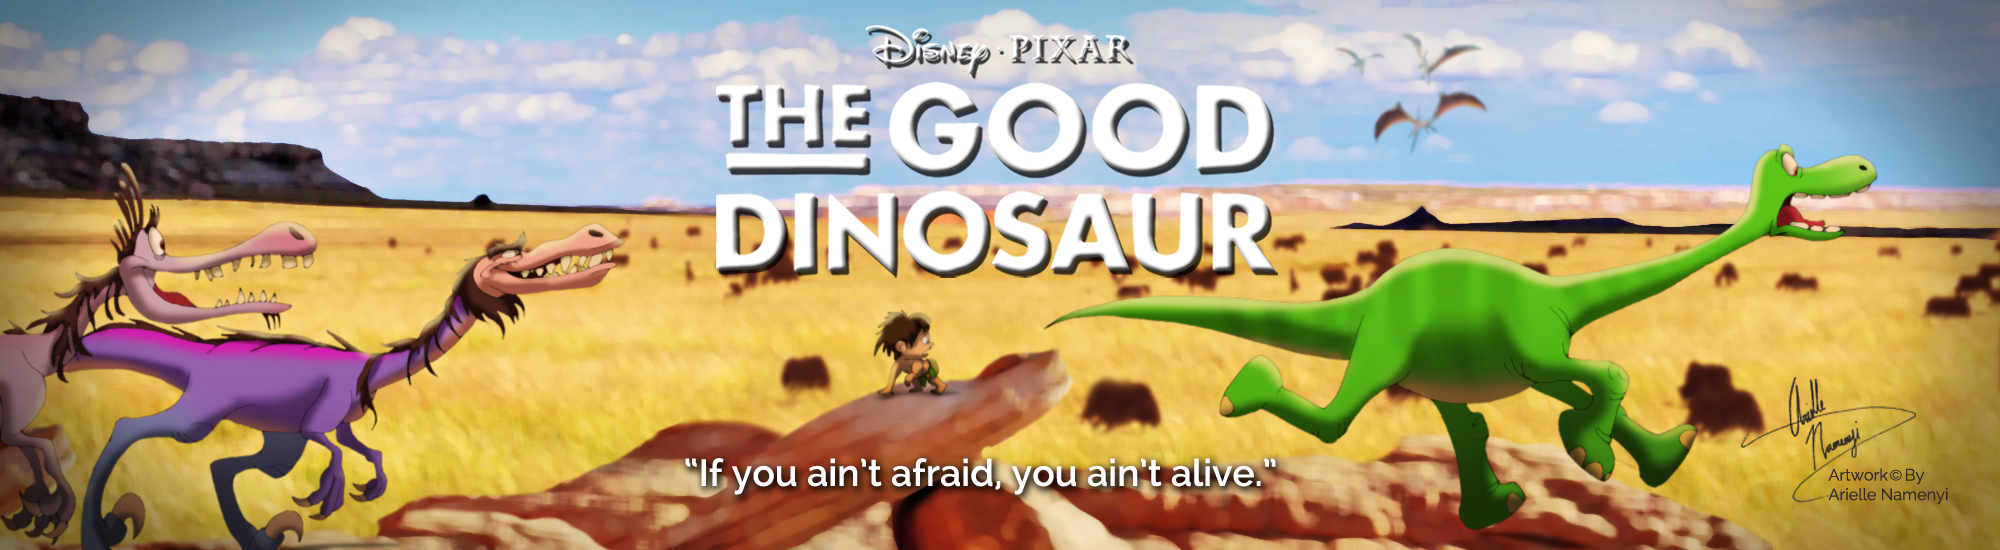 The Good Dinosaur Banner 3